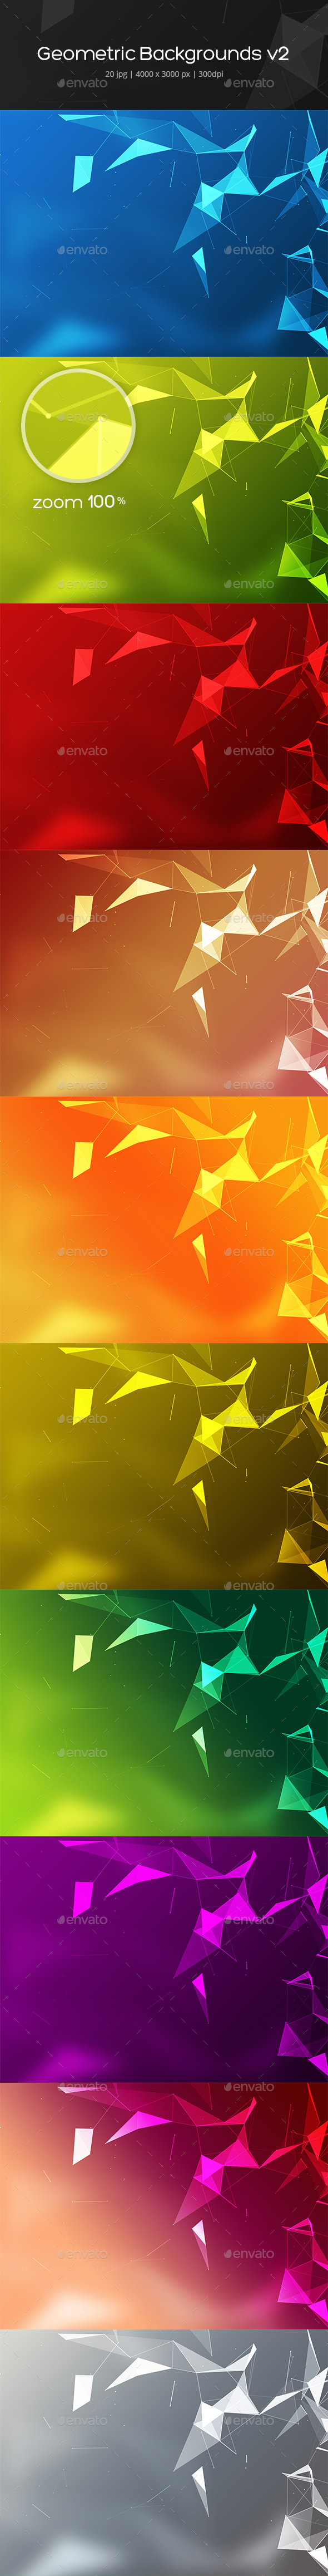 GraphicRiver Geometric Backgrounds v2 21150753